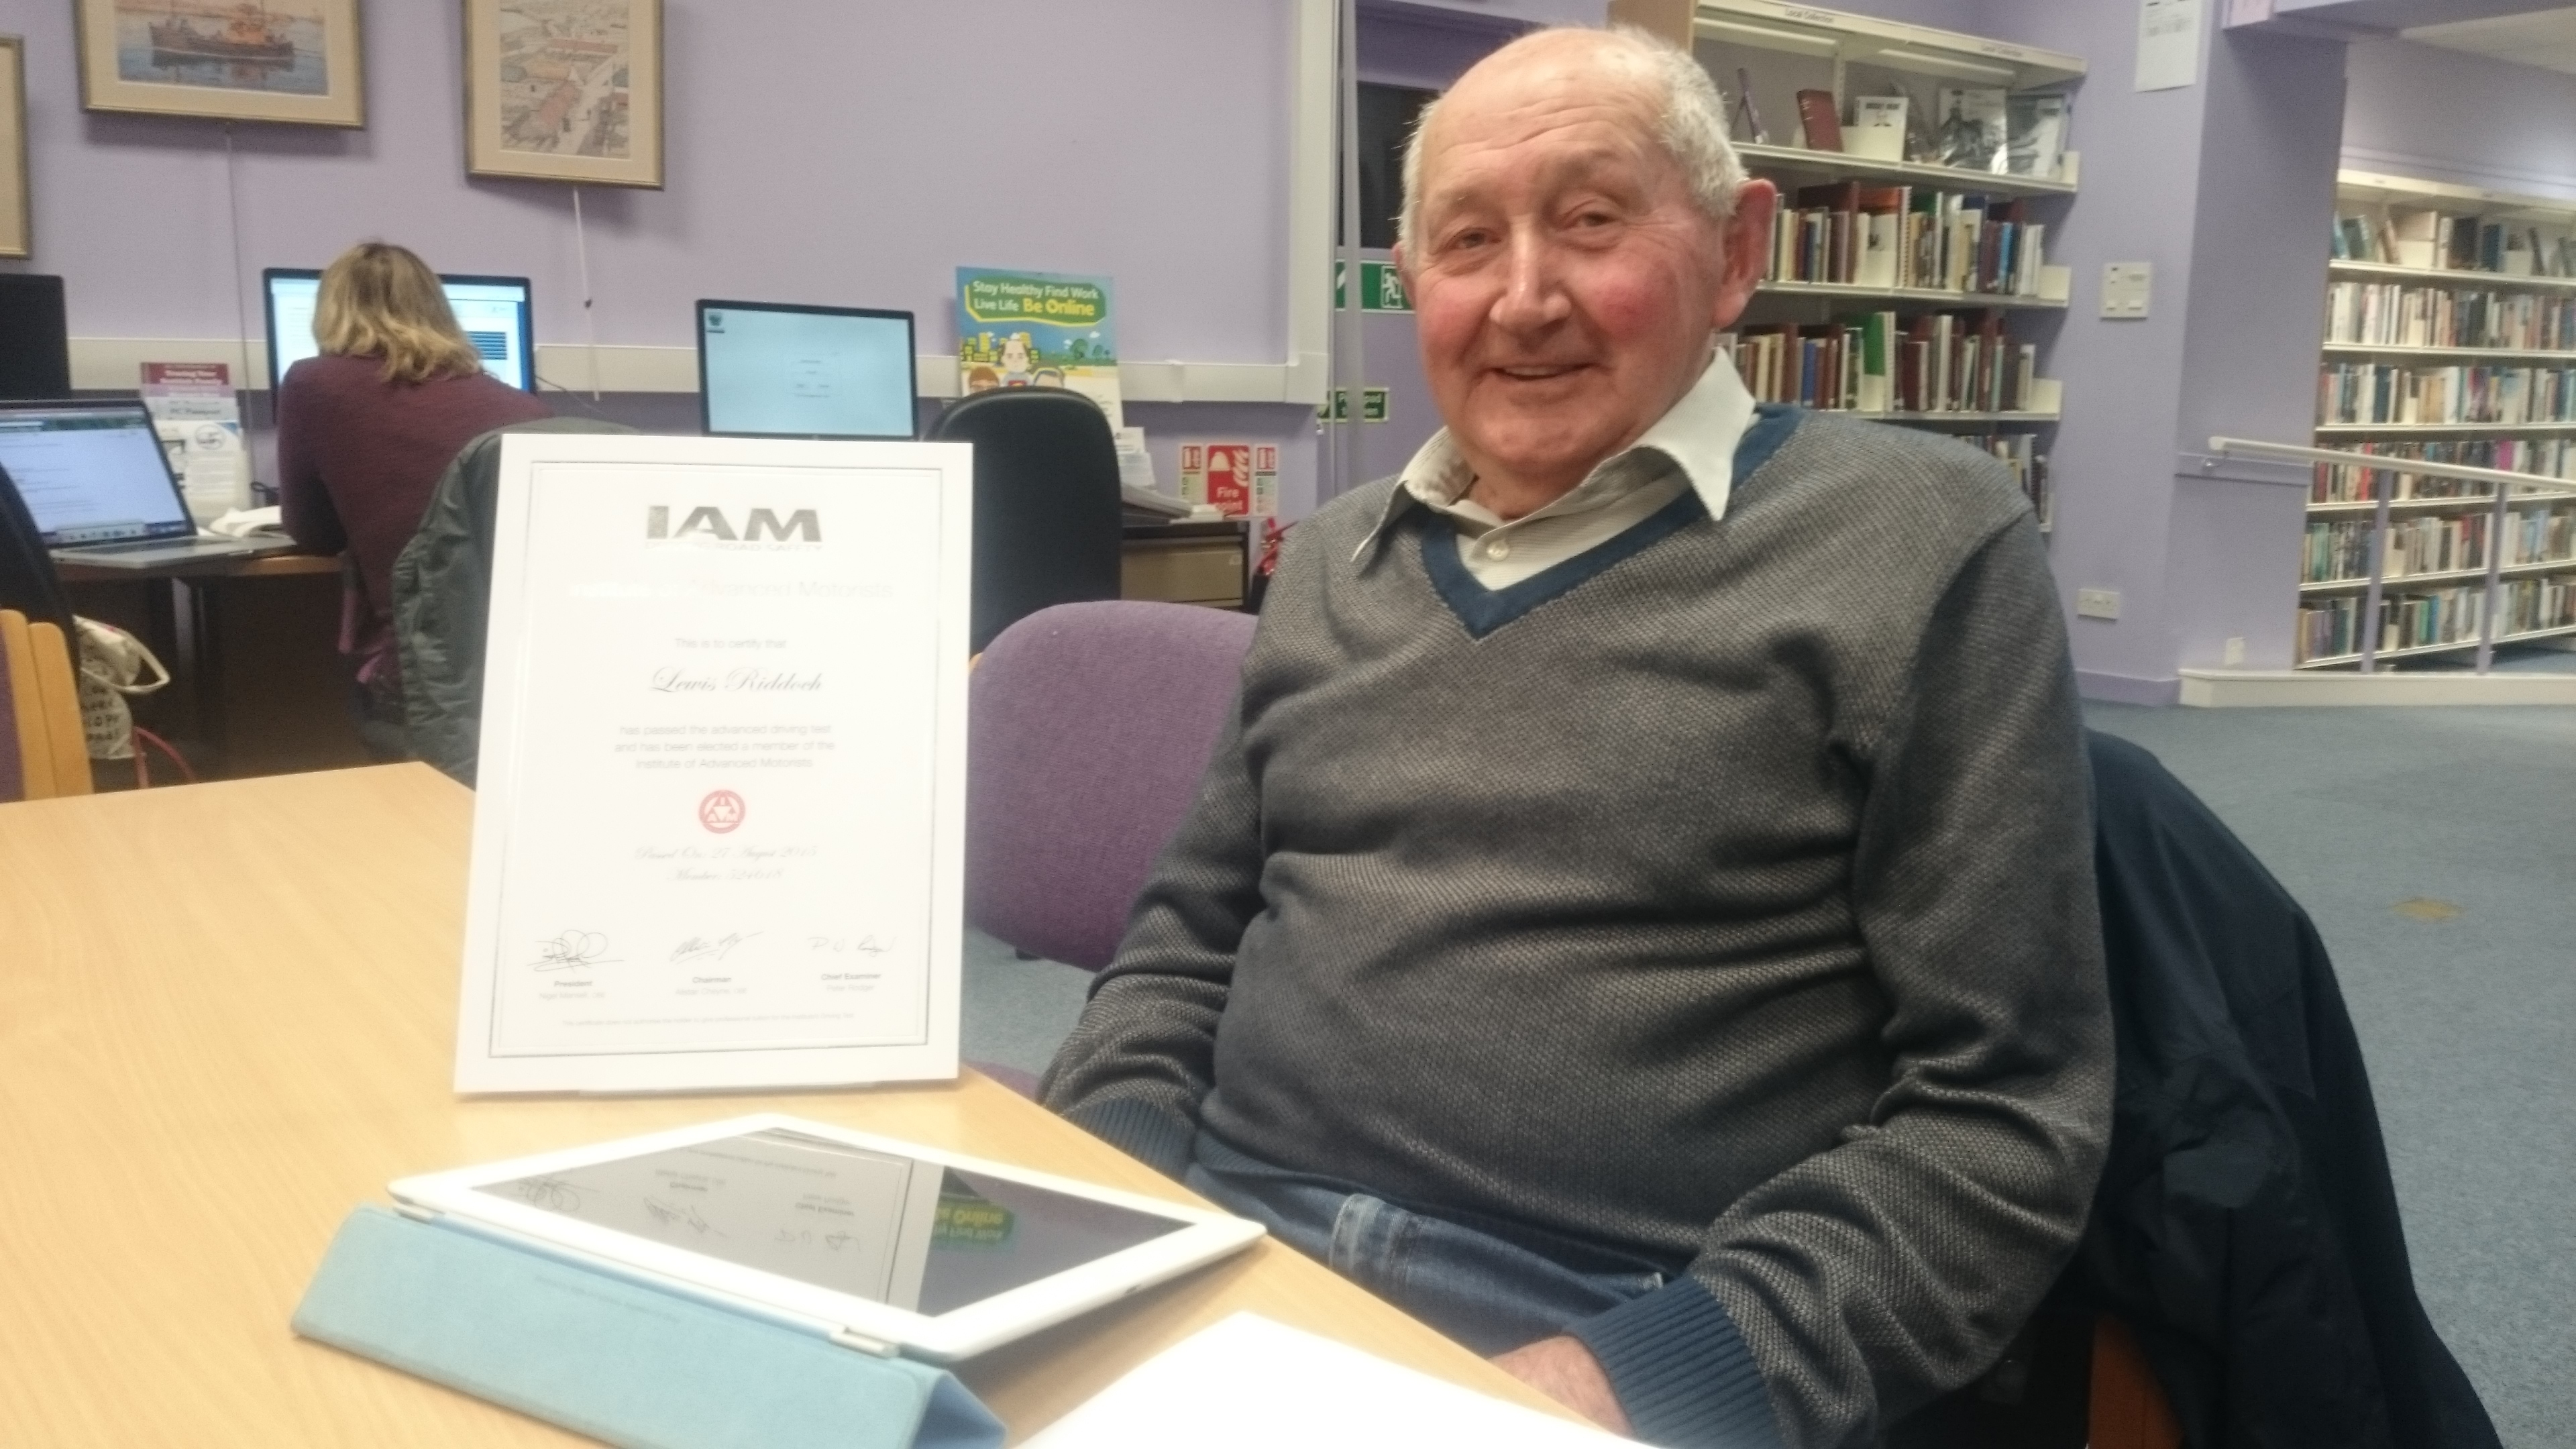 Lewis Riddoch, 80, learned internet skills after going to classes at Buckie Library.